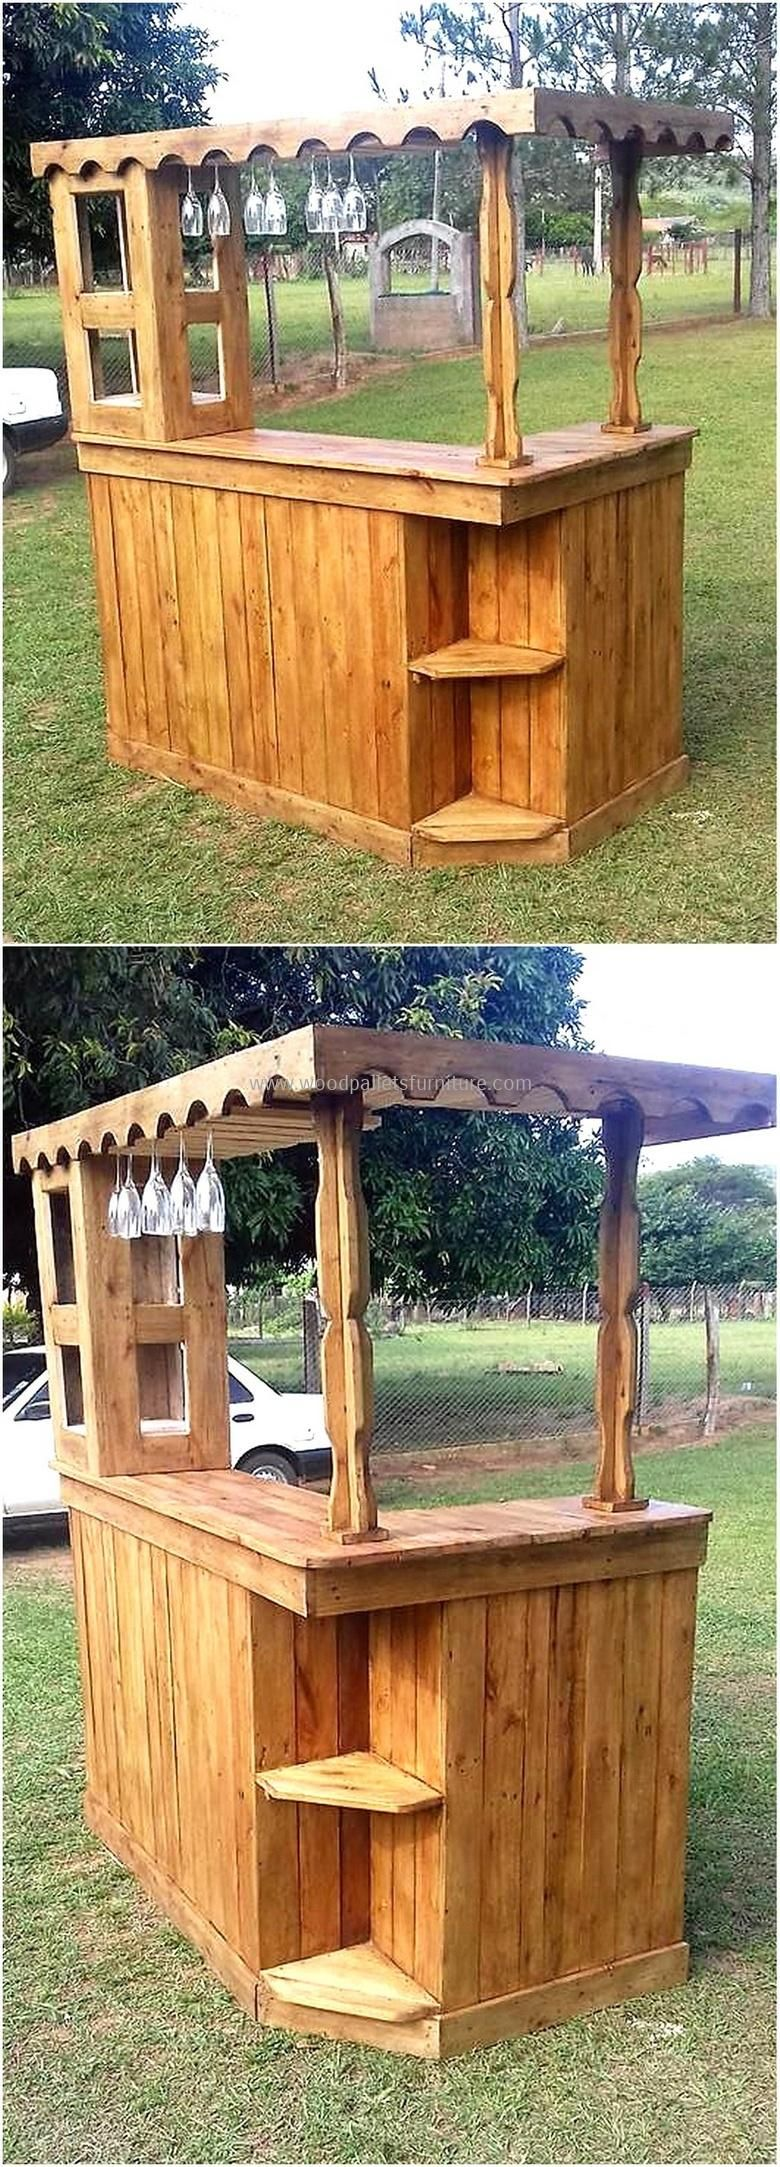 Low Cost DIY Pallet Wood Creations | Pinterest | Garten-wasserspiele ...